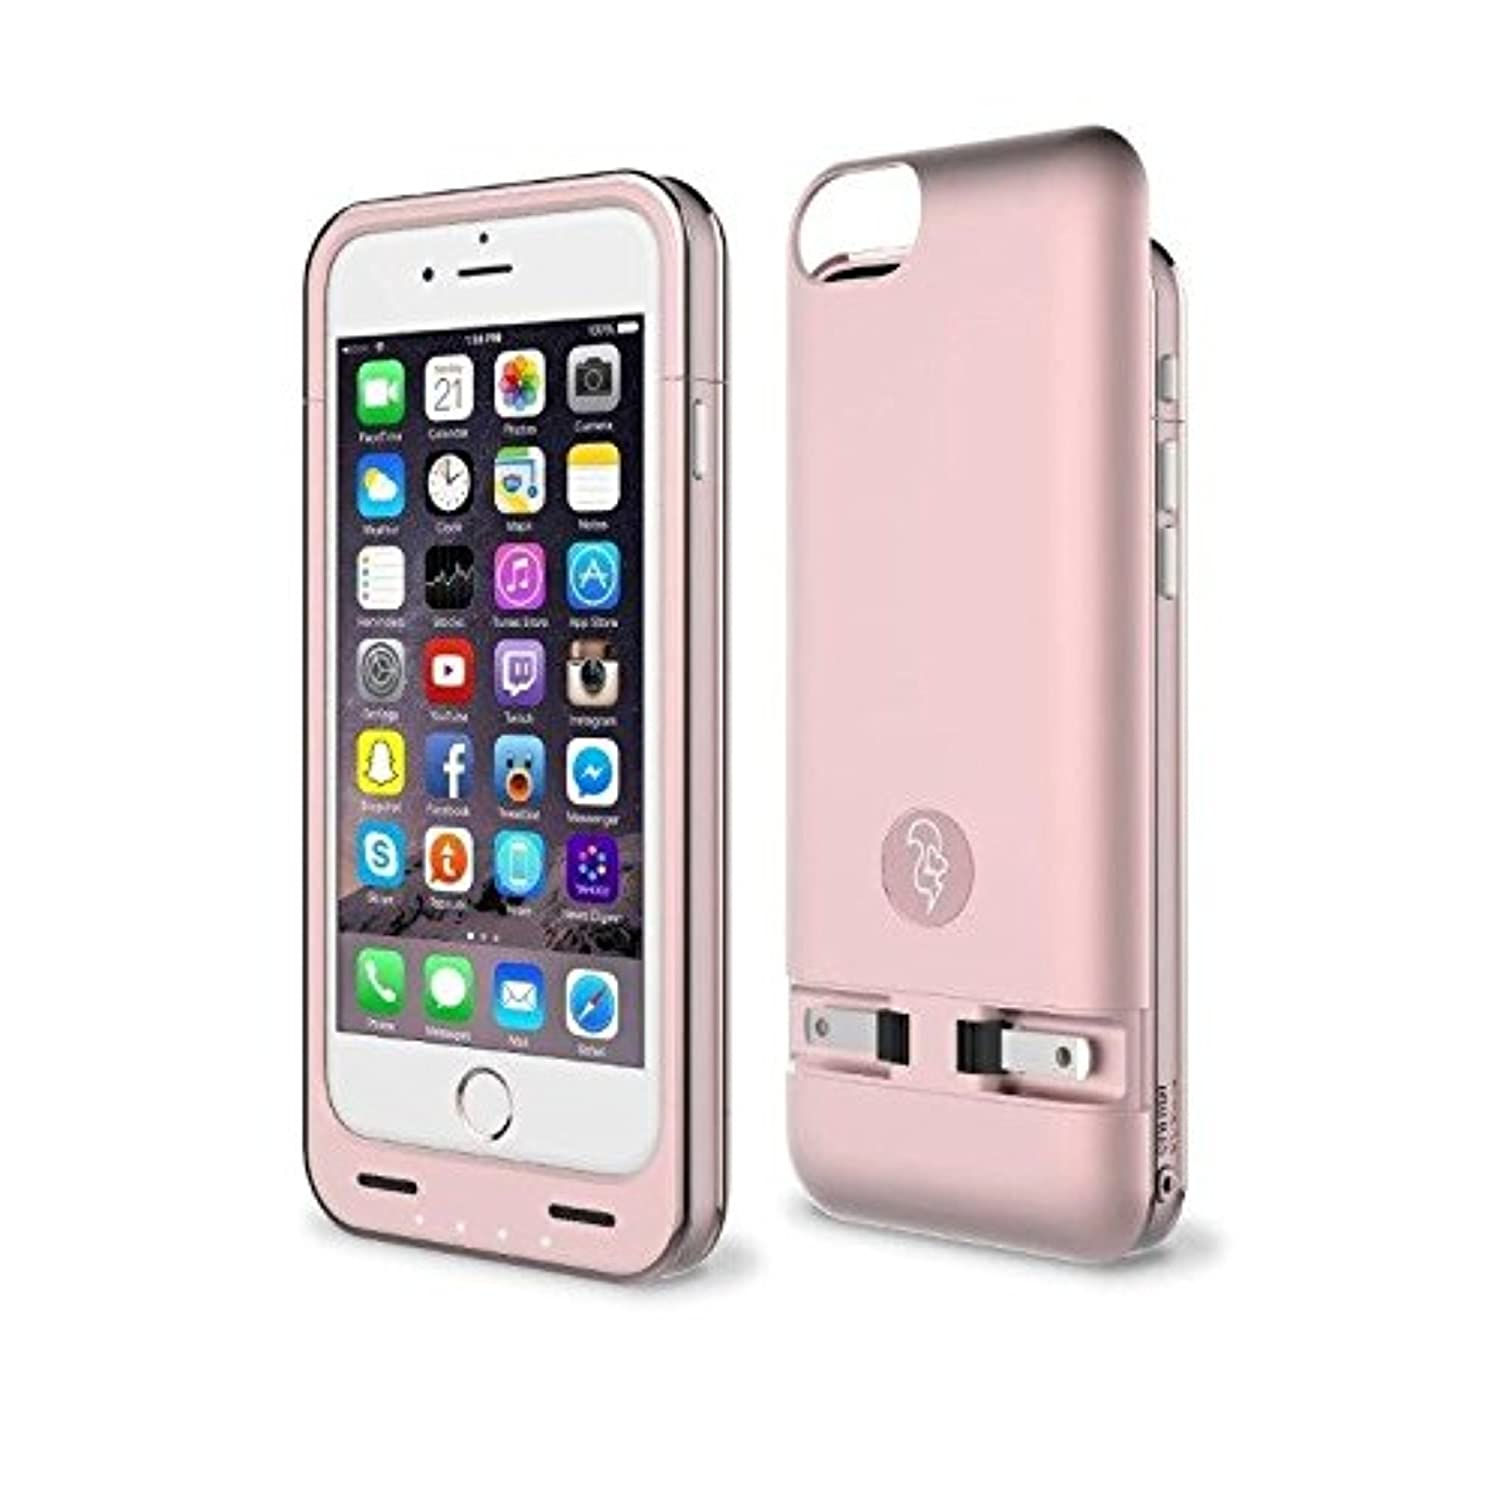 sports shoes d68dc cef6a Squirl iPhone 6/6S Battery Case - Built-in Charger Charges Your Battery -  Case Fully Protects Your Cell Phone - Patented Slide & Hide Power Plugs -  ...